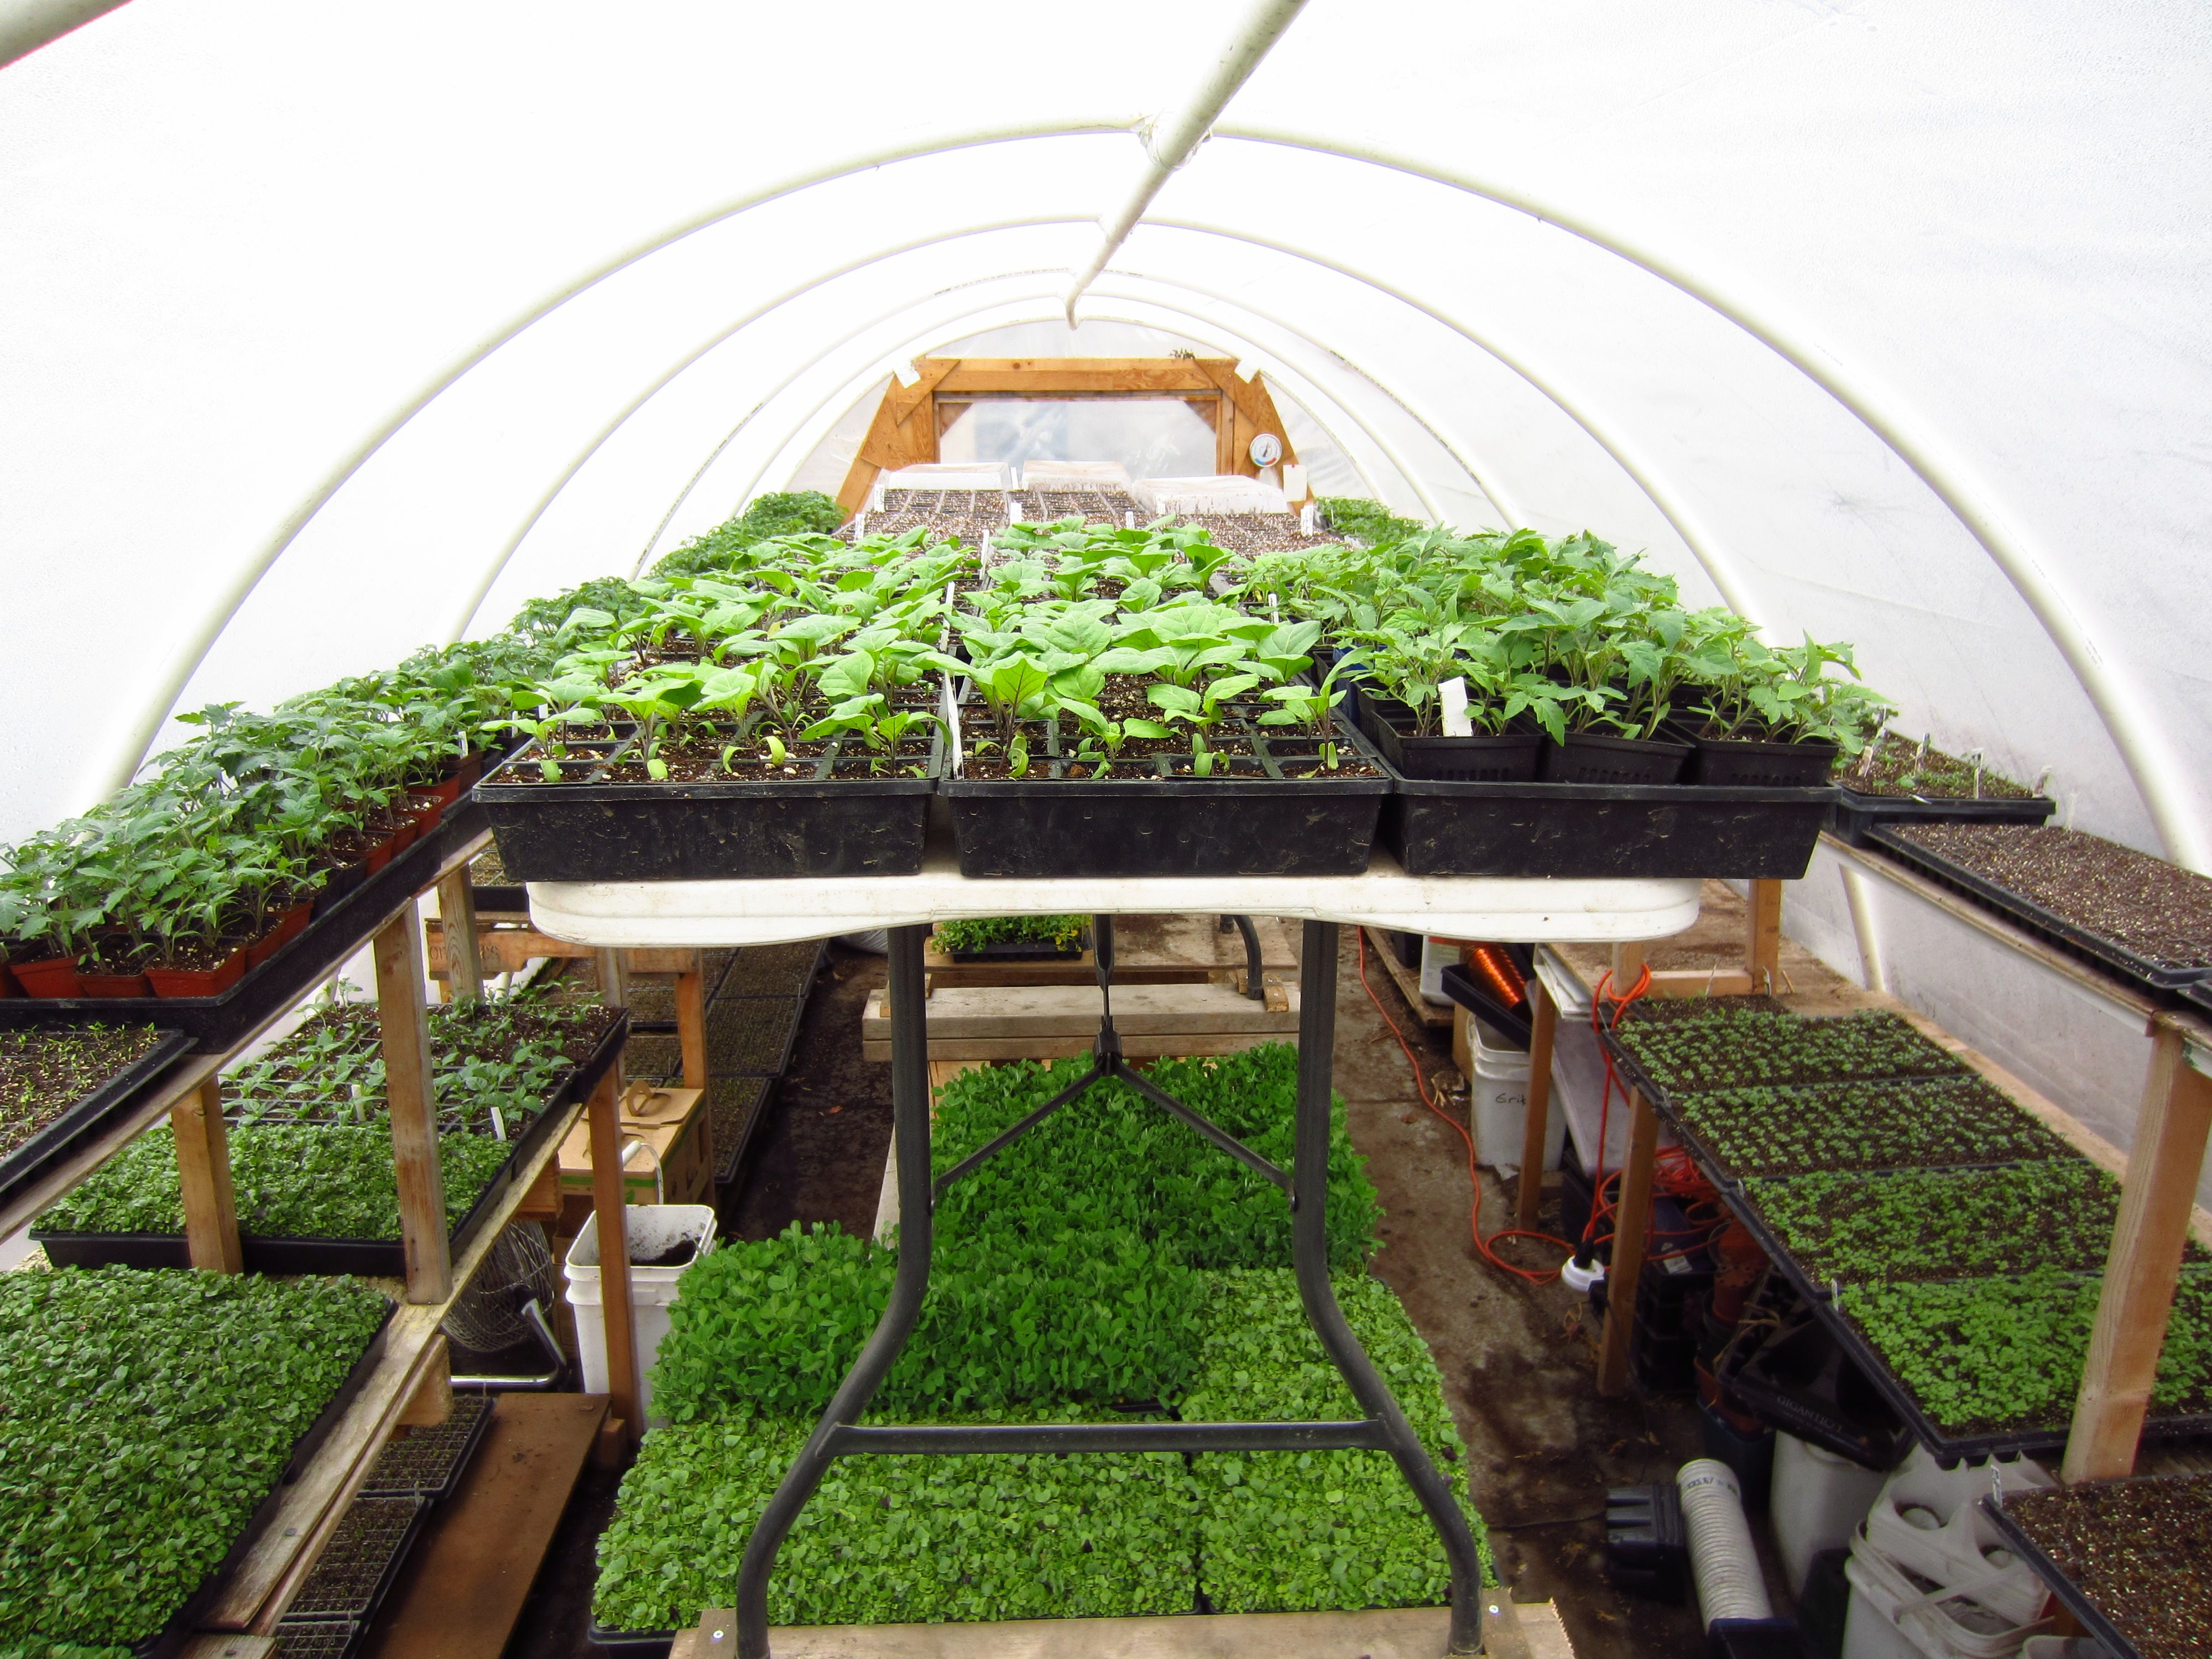 80k Year Farming On 1 3 Acre Square Foot Gardening Meets Commercial Farming Urban Farmer Commercial Farming Square Foot Gardening